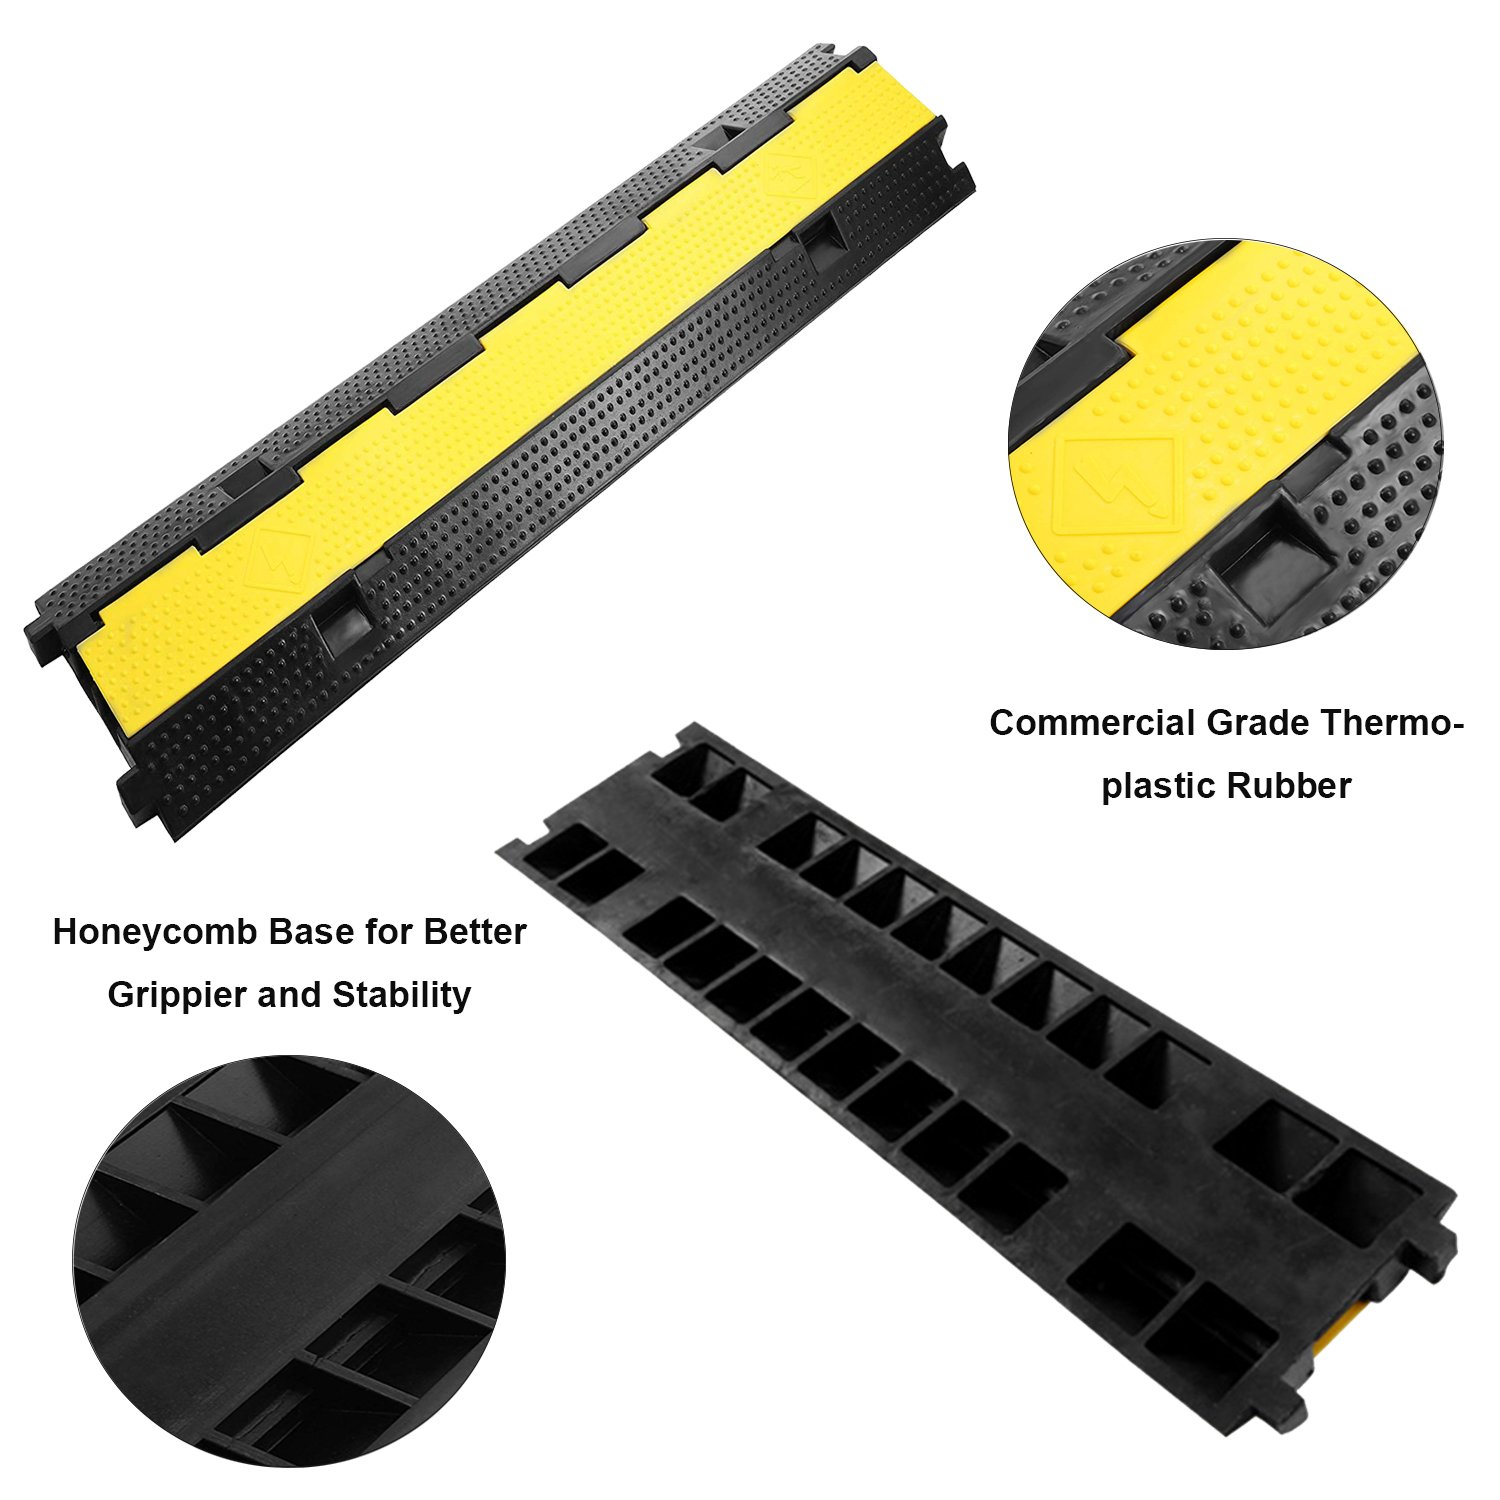 Reliancer 3 Pack Dual Channel Rubber Cable Protector Ramp 2 Channel Traffic Speed Bump 11000lbs Capacity Heavy Duty Hose Cable Track Protector Protective Cover Wires Concealer w/Flip-open Top Cover by Reliancer (Image #3)